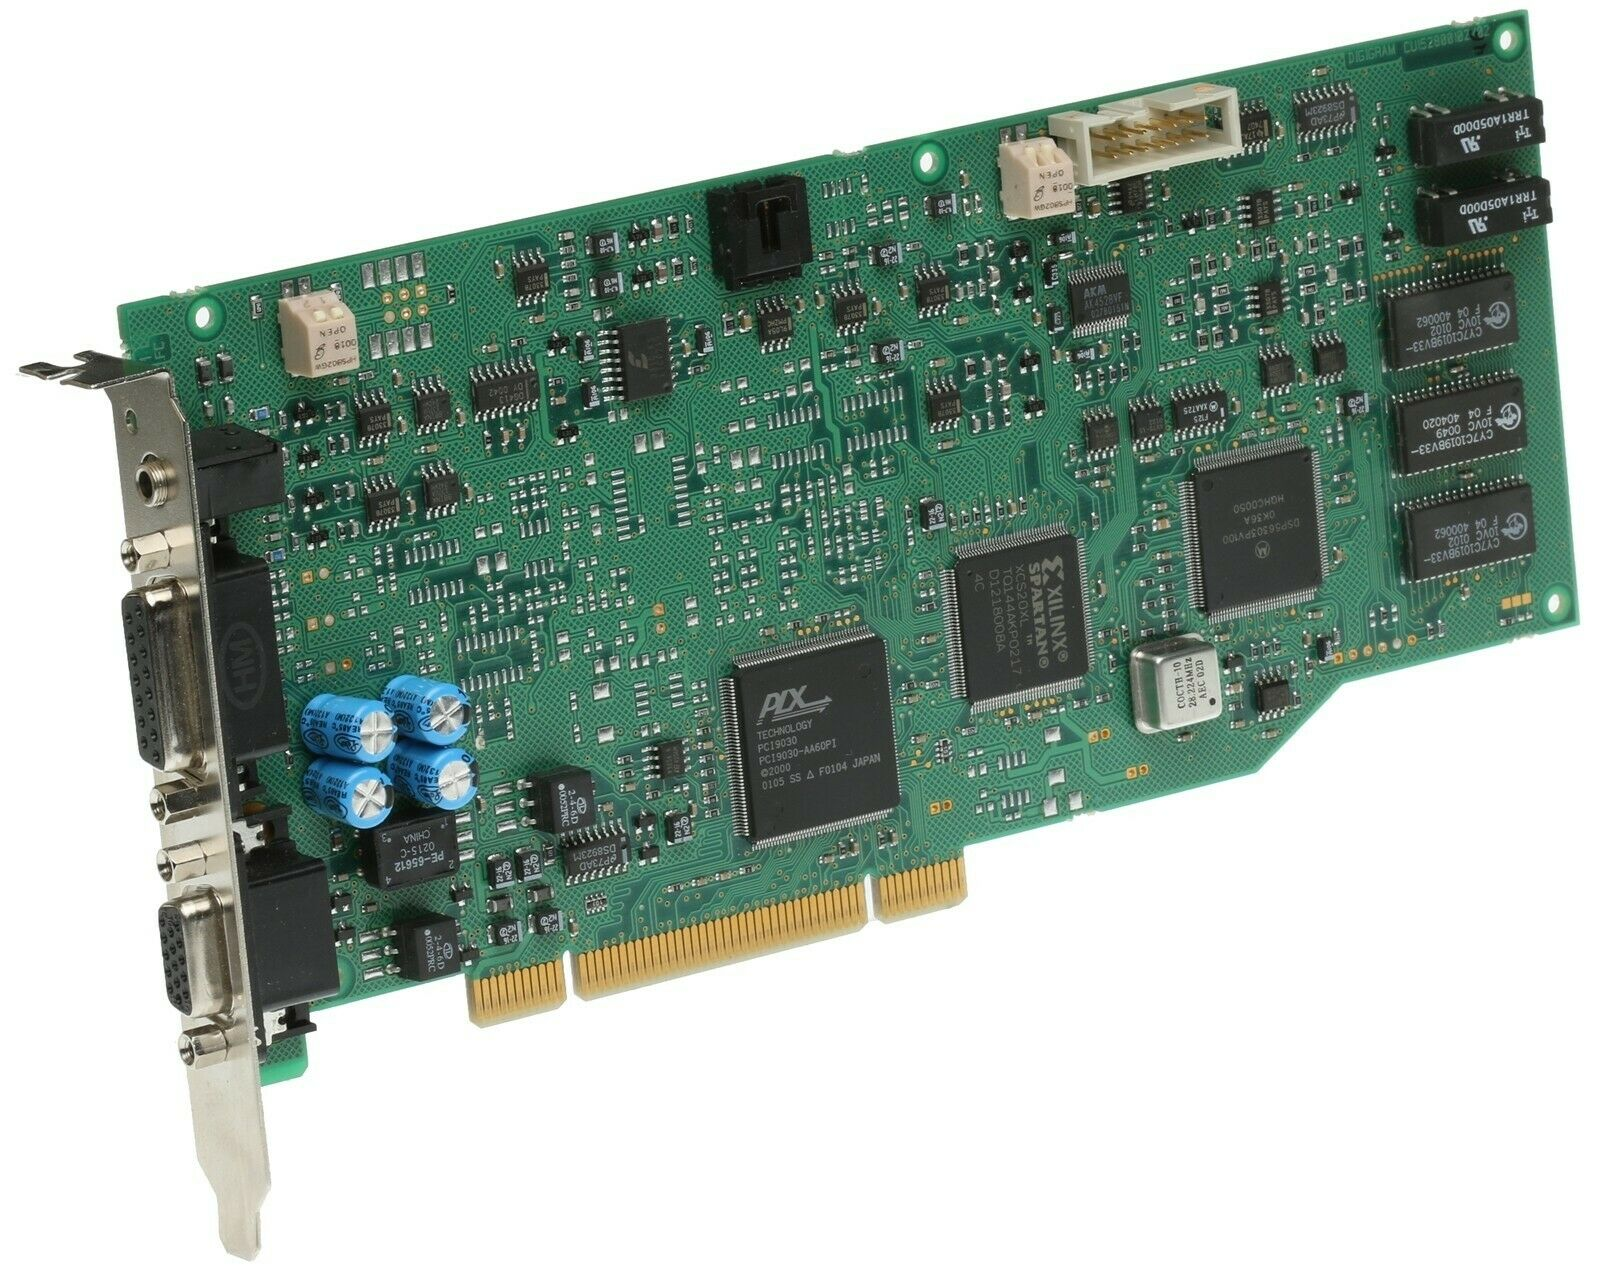 Digigram PCX924 v2 Broadcast AES/EBU & Balanced Analog Audio Sound Card [Used]-www.prostudioconnection.com